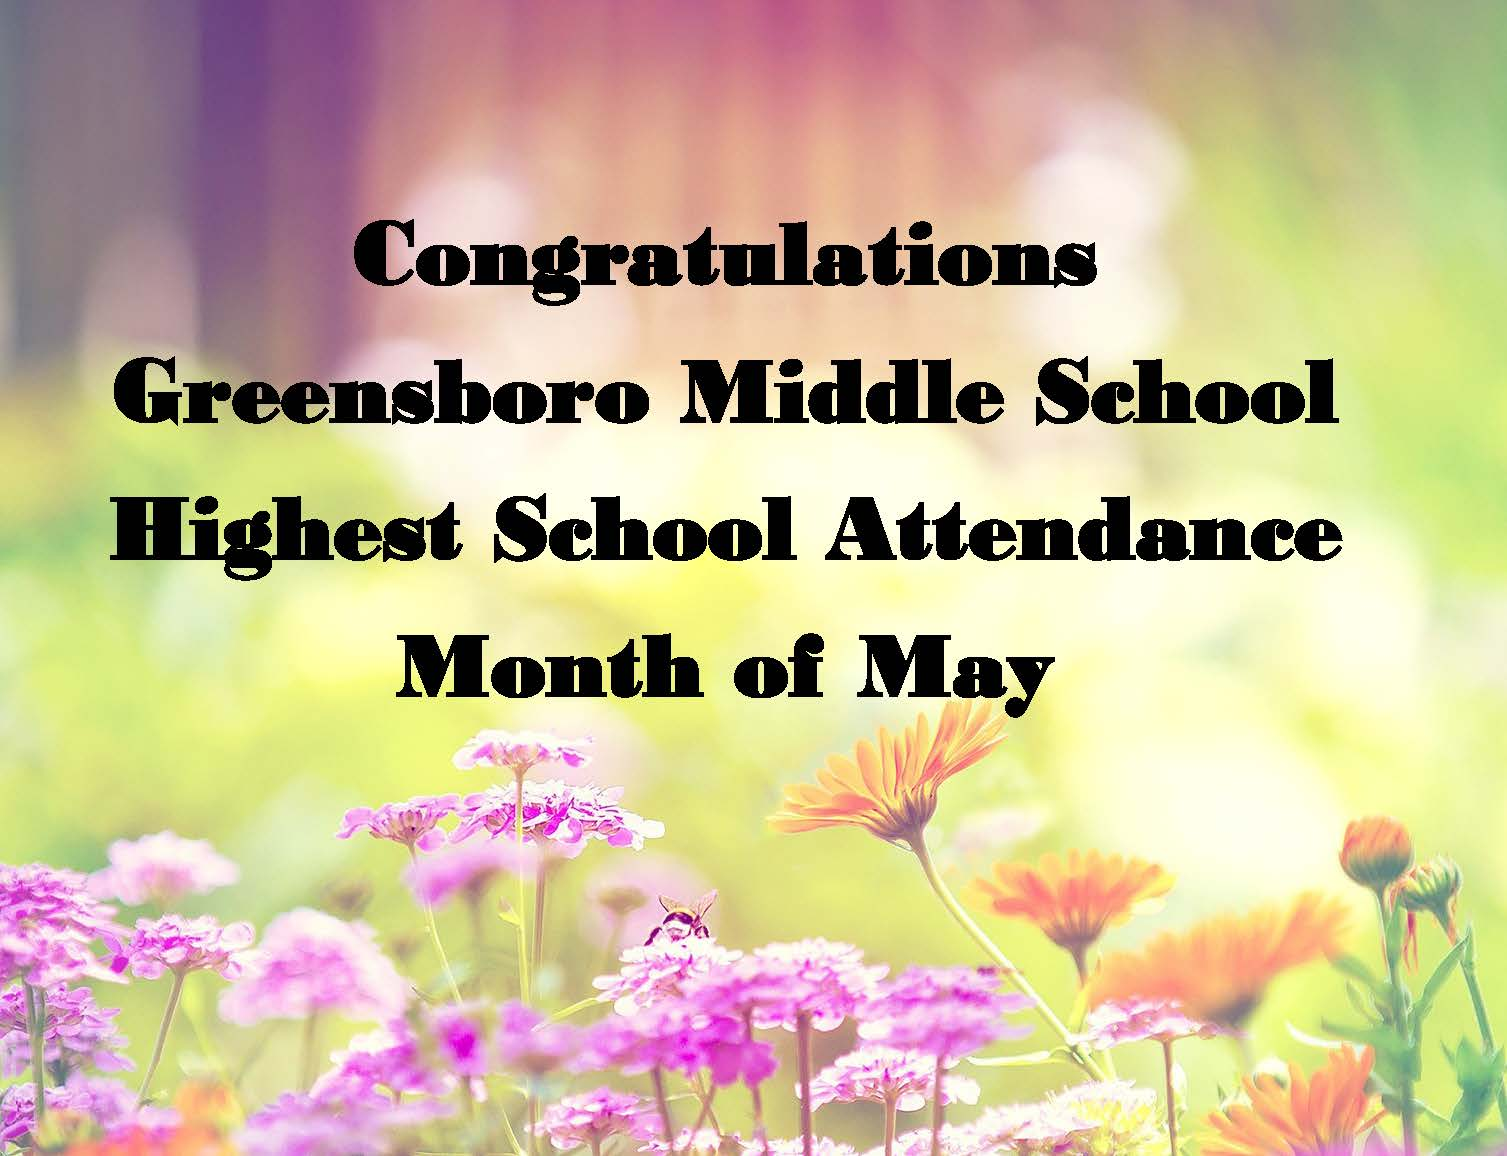 congratulations greensboro middle school highest school attendance month of may